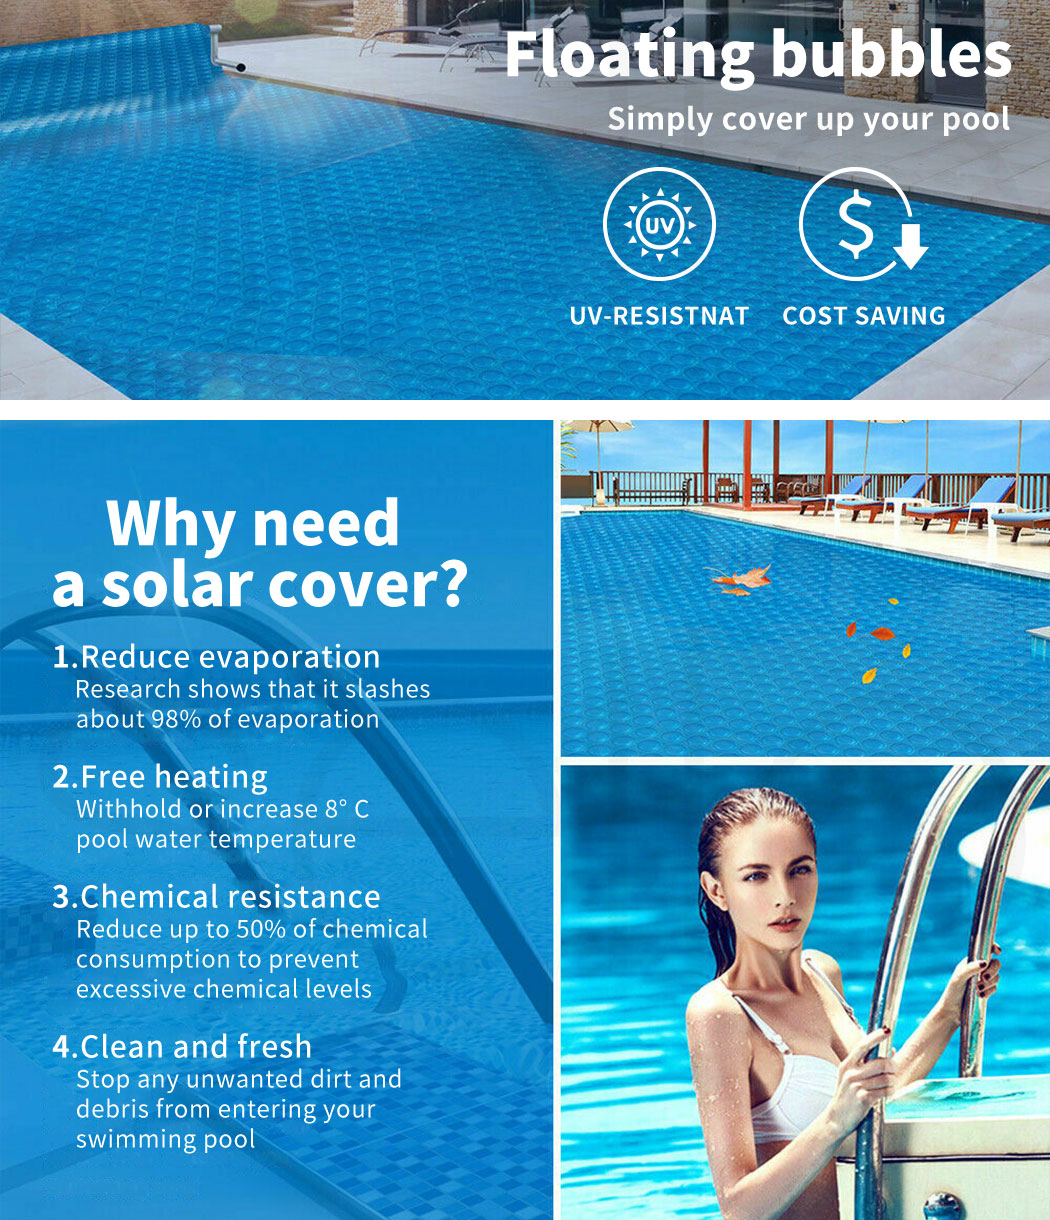 Solar-Swimming-Pool-Cover-400-500-Micron-Outdoor-Bubble-Blanket-Covers-7-Sizes thumbnail 129